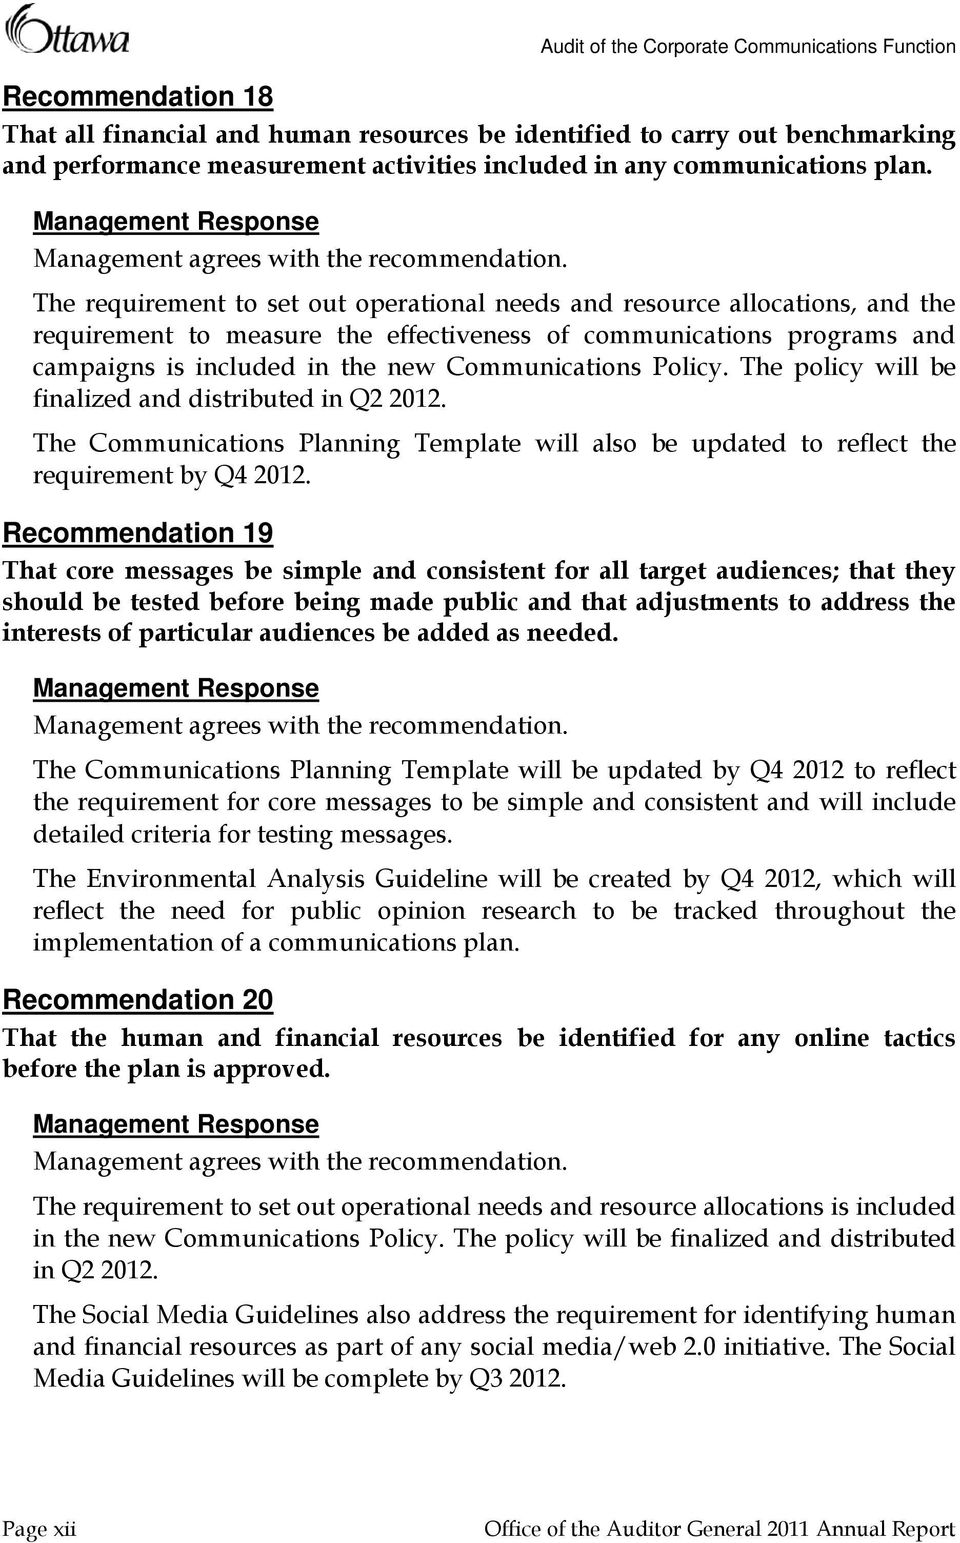 Policy. The policy will be finalized and distributed in Q2 2012. The Communications Planning Template will also be updated to reflect the requirement by Q4 2012.